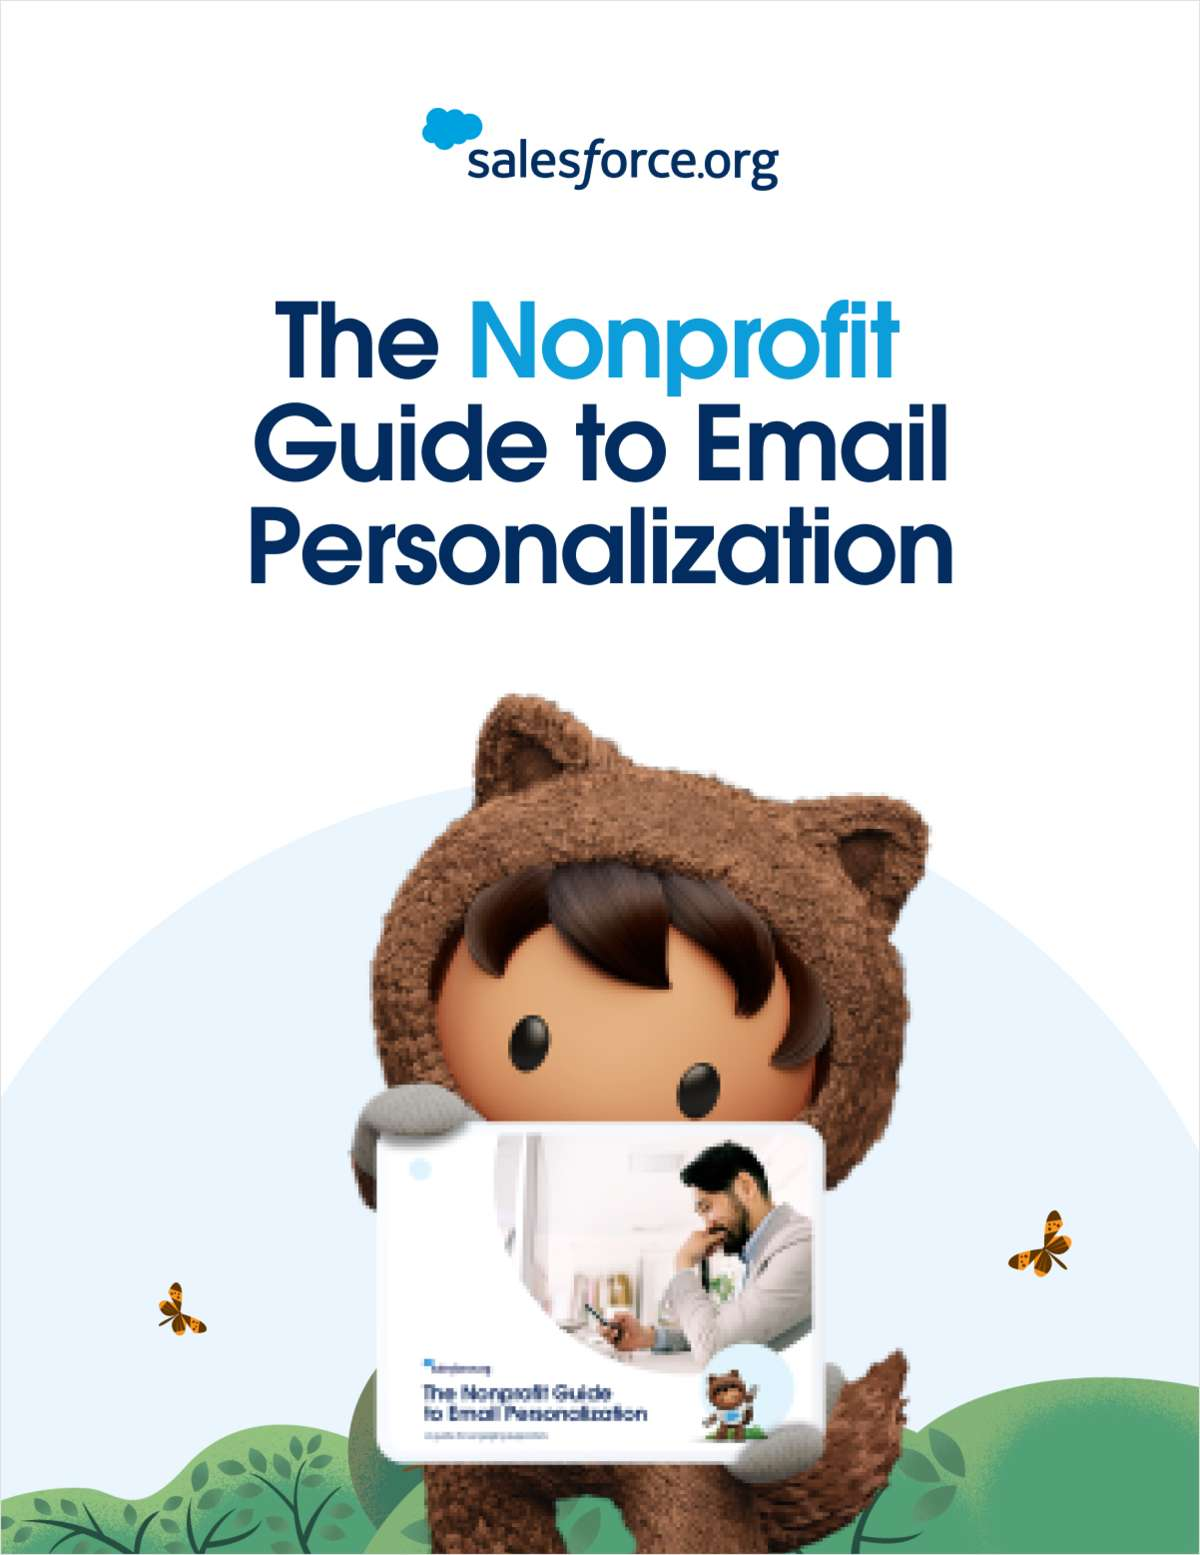 The Nonprofit Guide to Email Personalization